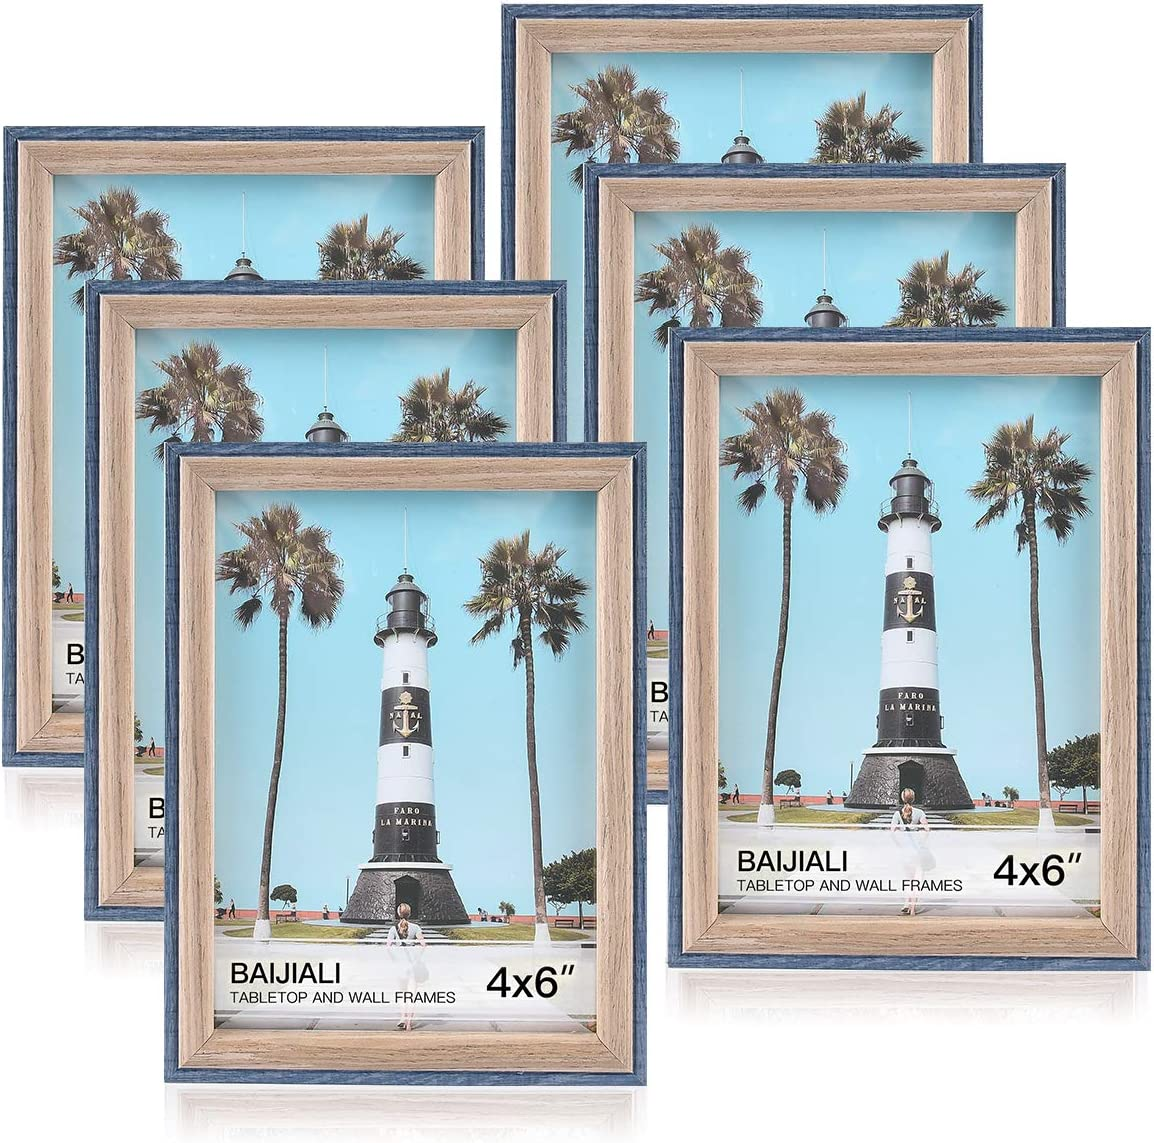 BAIJIALI 4x6 Picture Frame Set of 6 Rustic Photo Frames,100% Reclaimed Wood Frame Blue for Tabletop or Wall Decor,with High Definition Glass and 2 Extra Replaceable HD Plexiglasses